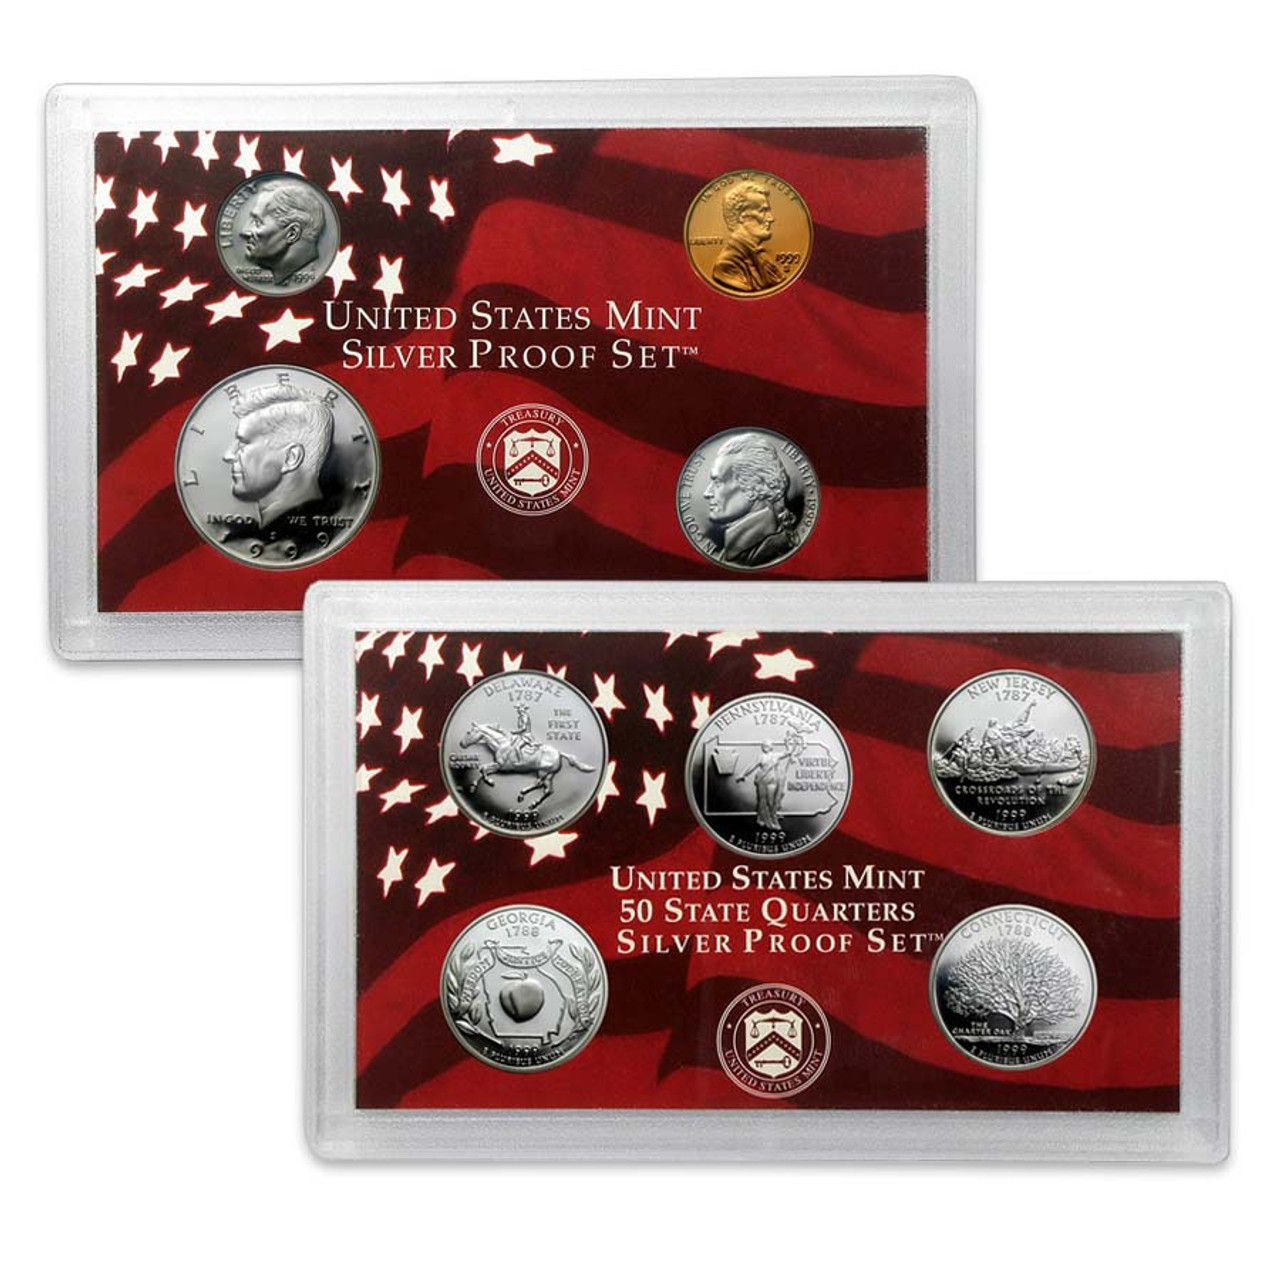 1999 Silver Proof Set 9 Coins Image 1